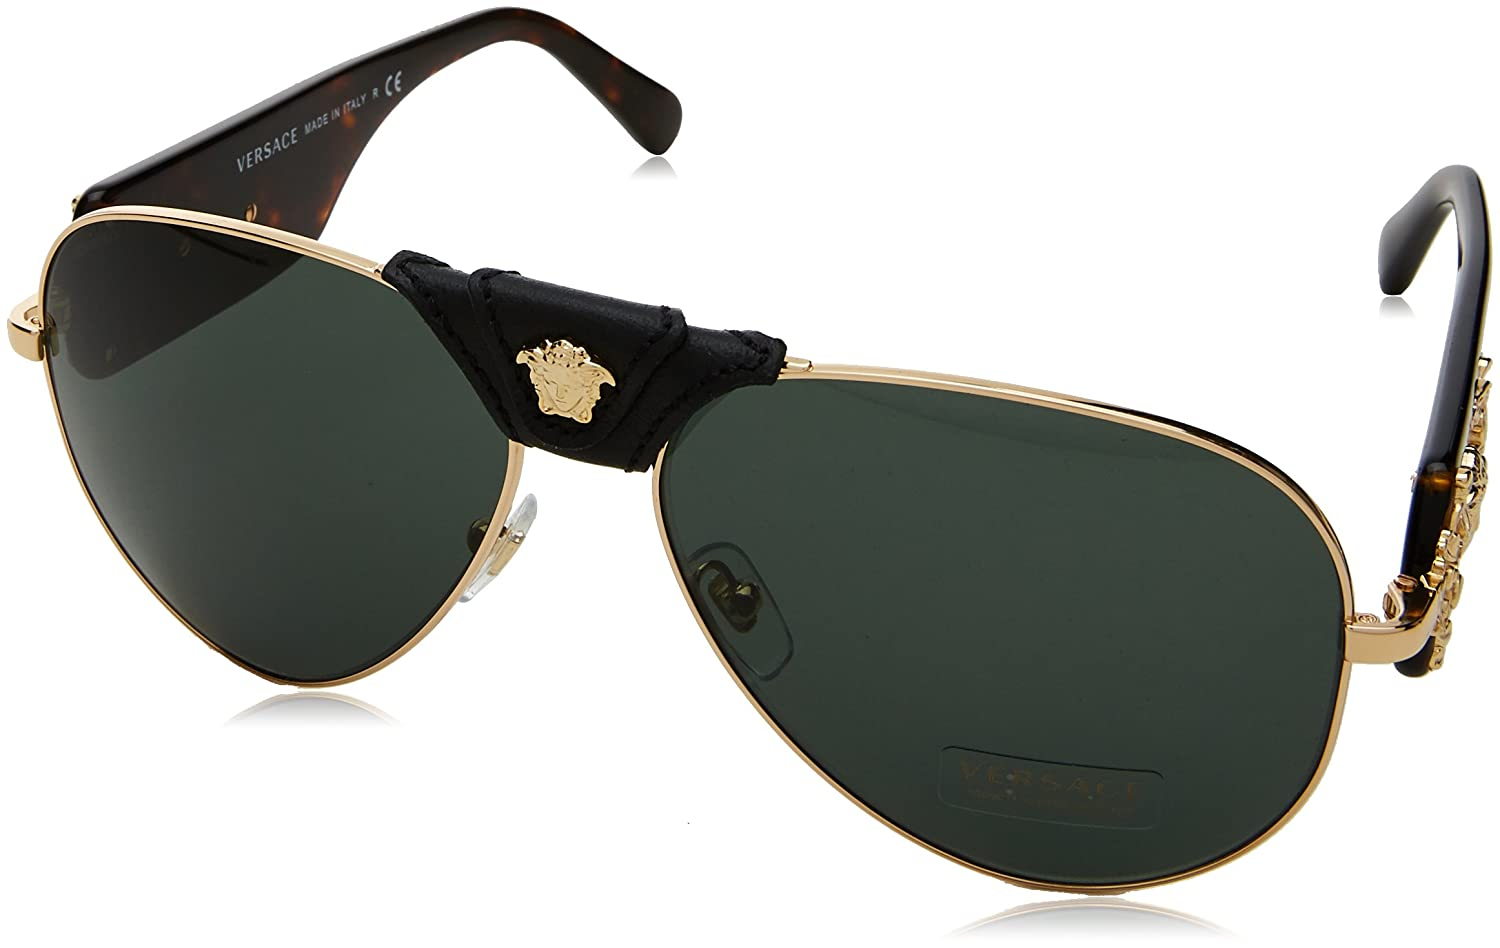 18c8b6180df8 Amazon.com  Versace Mens Sunglasses Gold Grey Metal - Non-Polarized - 62mm   Versace  Clothing